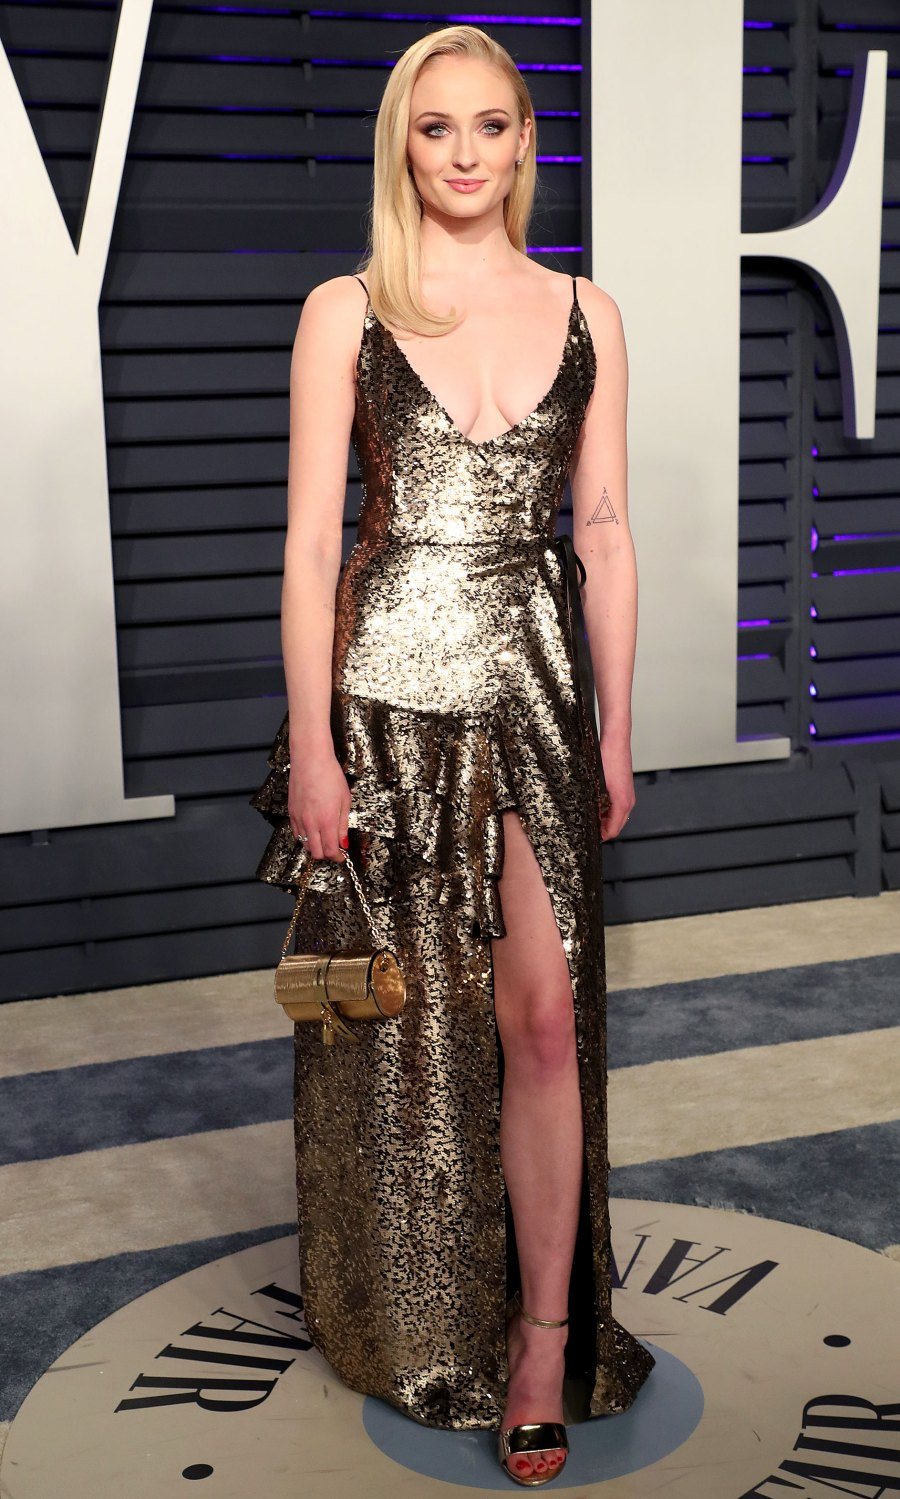 Sophie Turner Louis Vuitton February 24, 2019